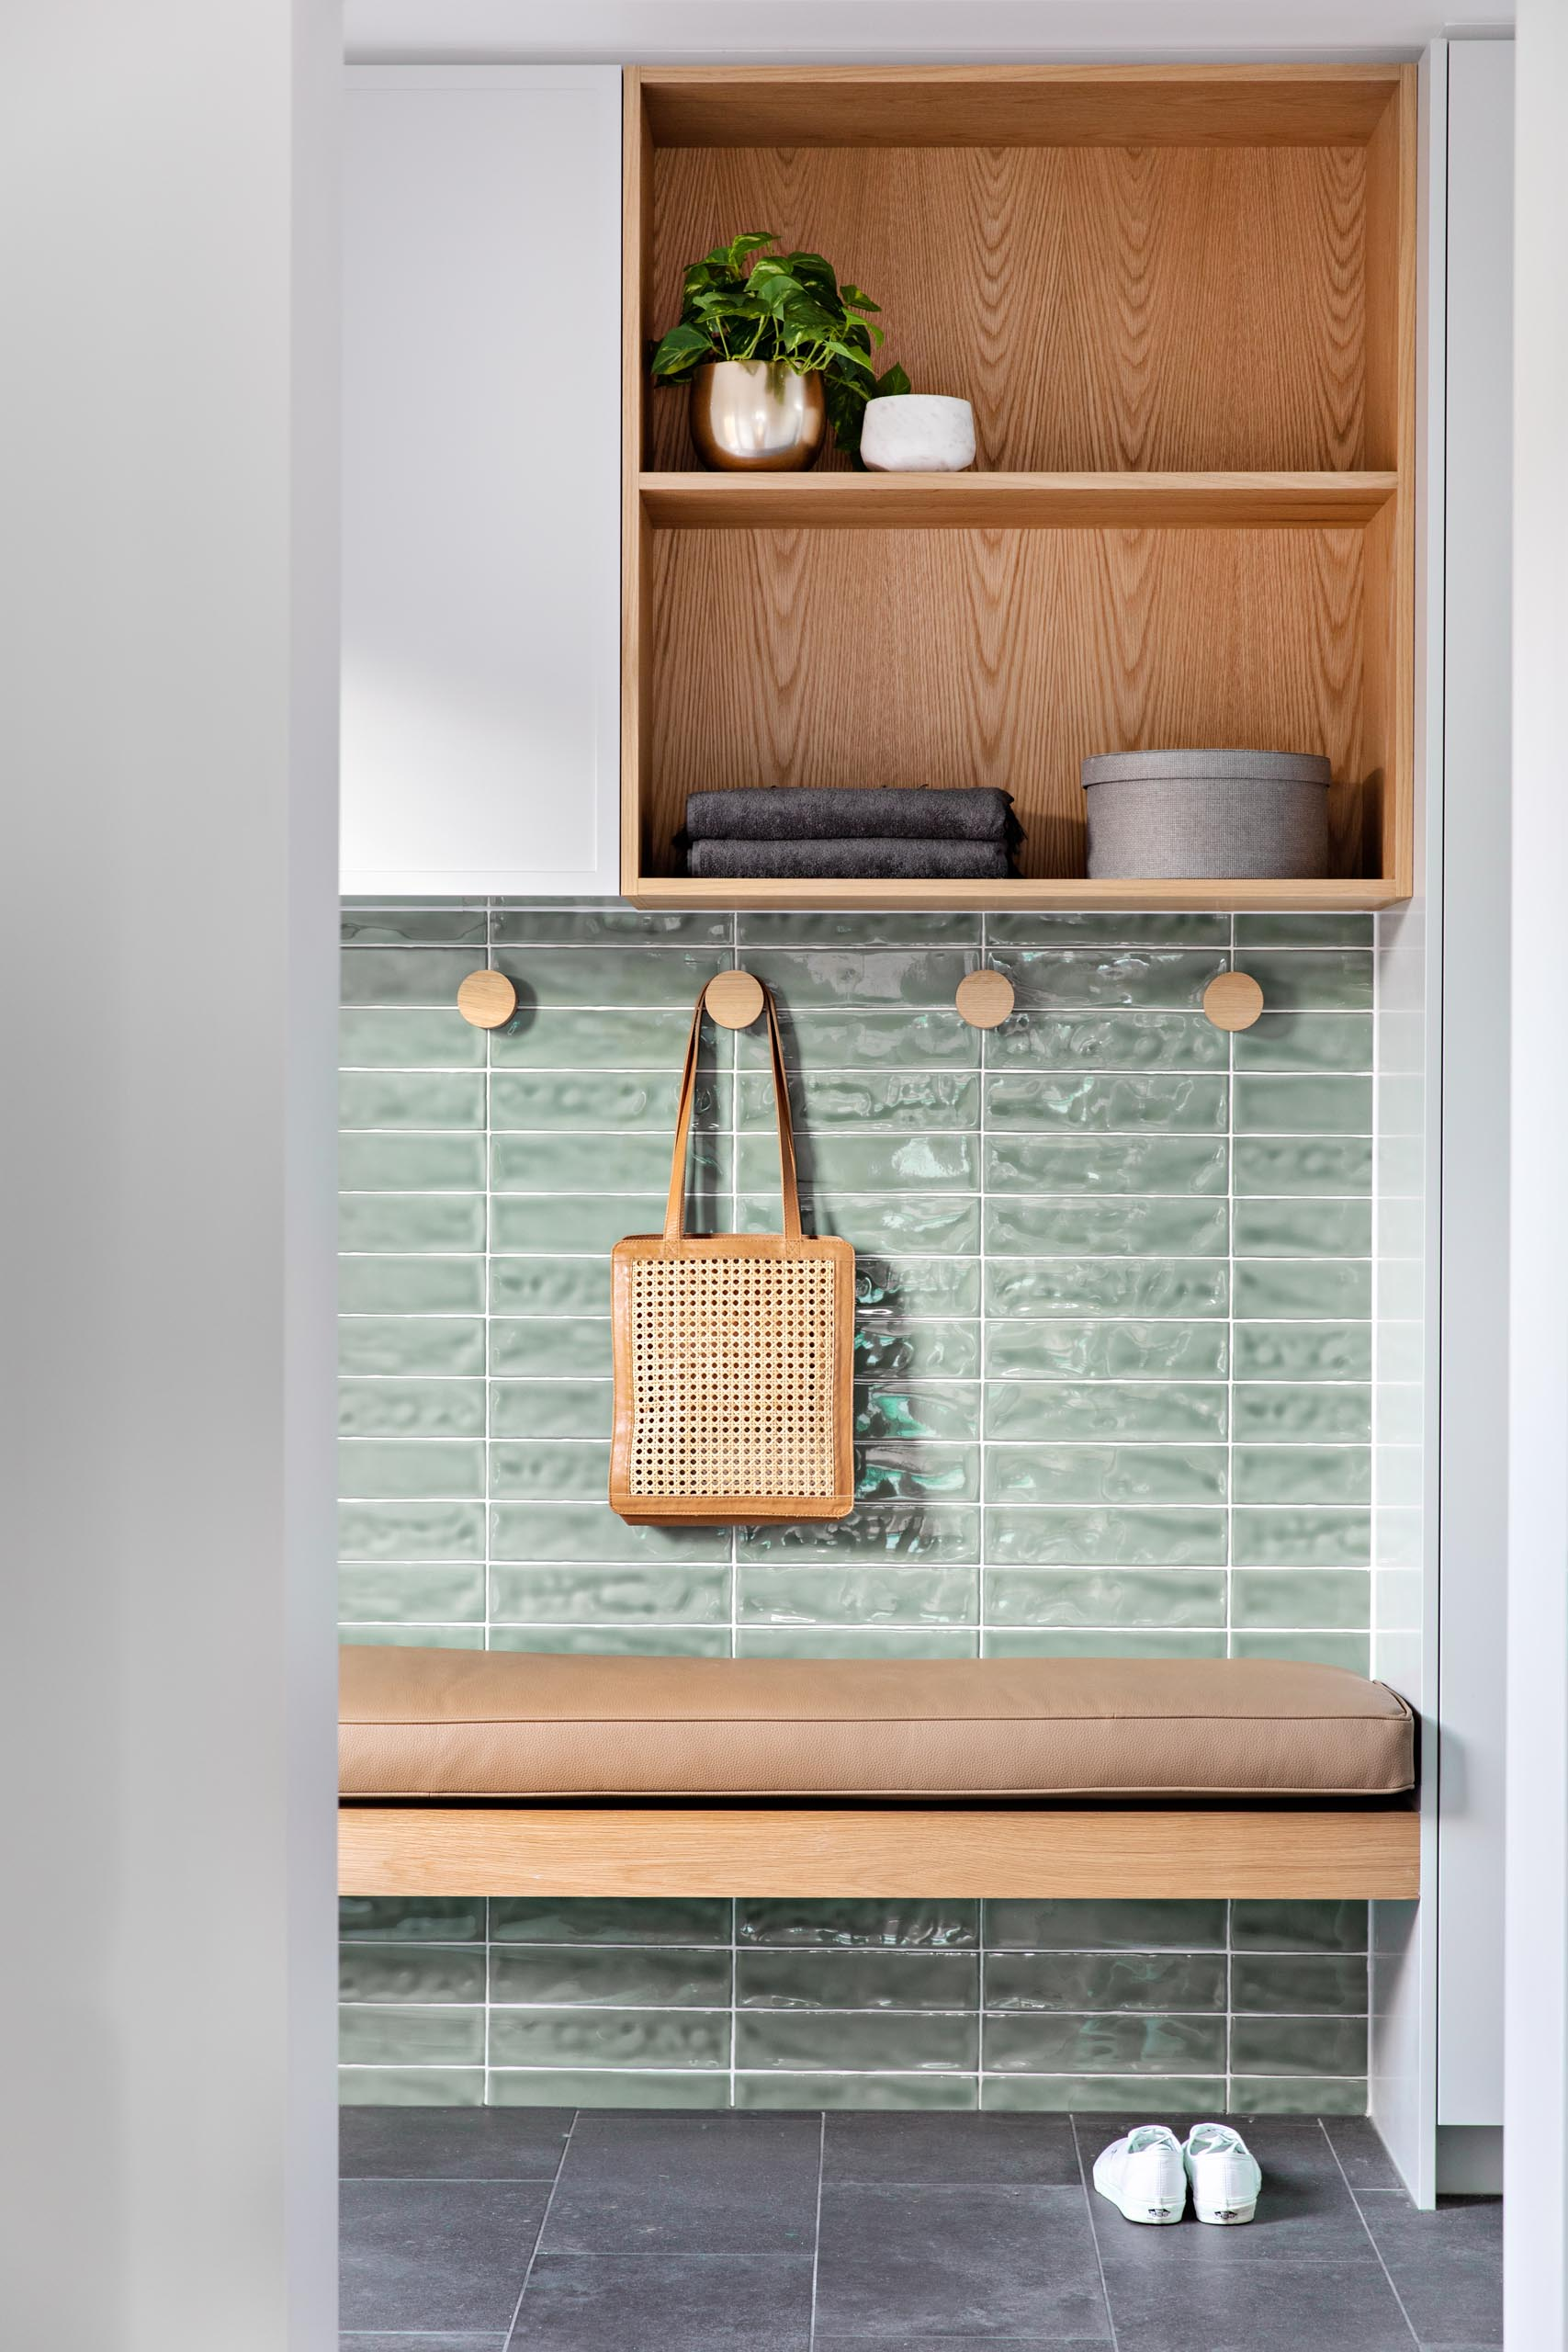 A small mud room with soft green tiles, a wood bench with brown leather cushion, round wood hooks, and a cabinet with open wood shelving.